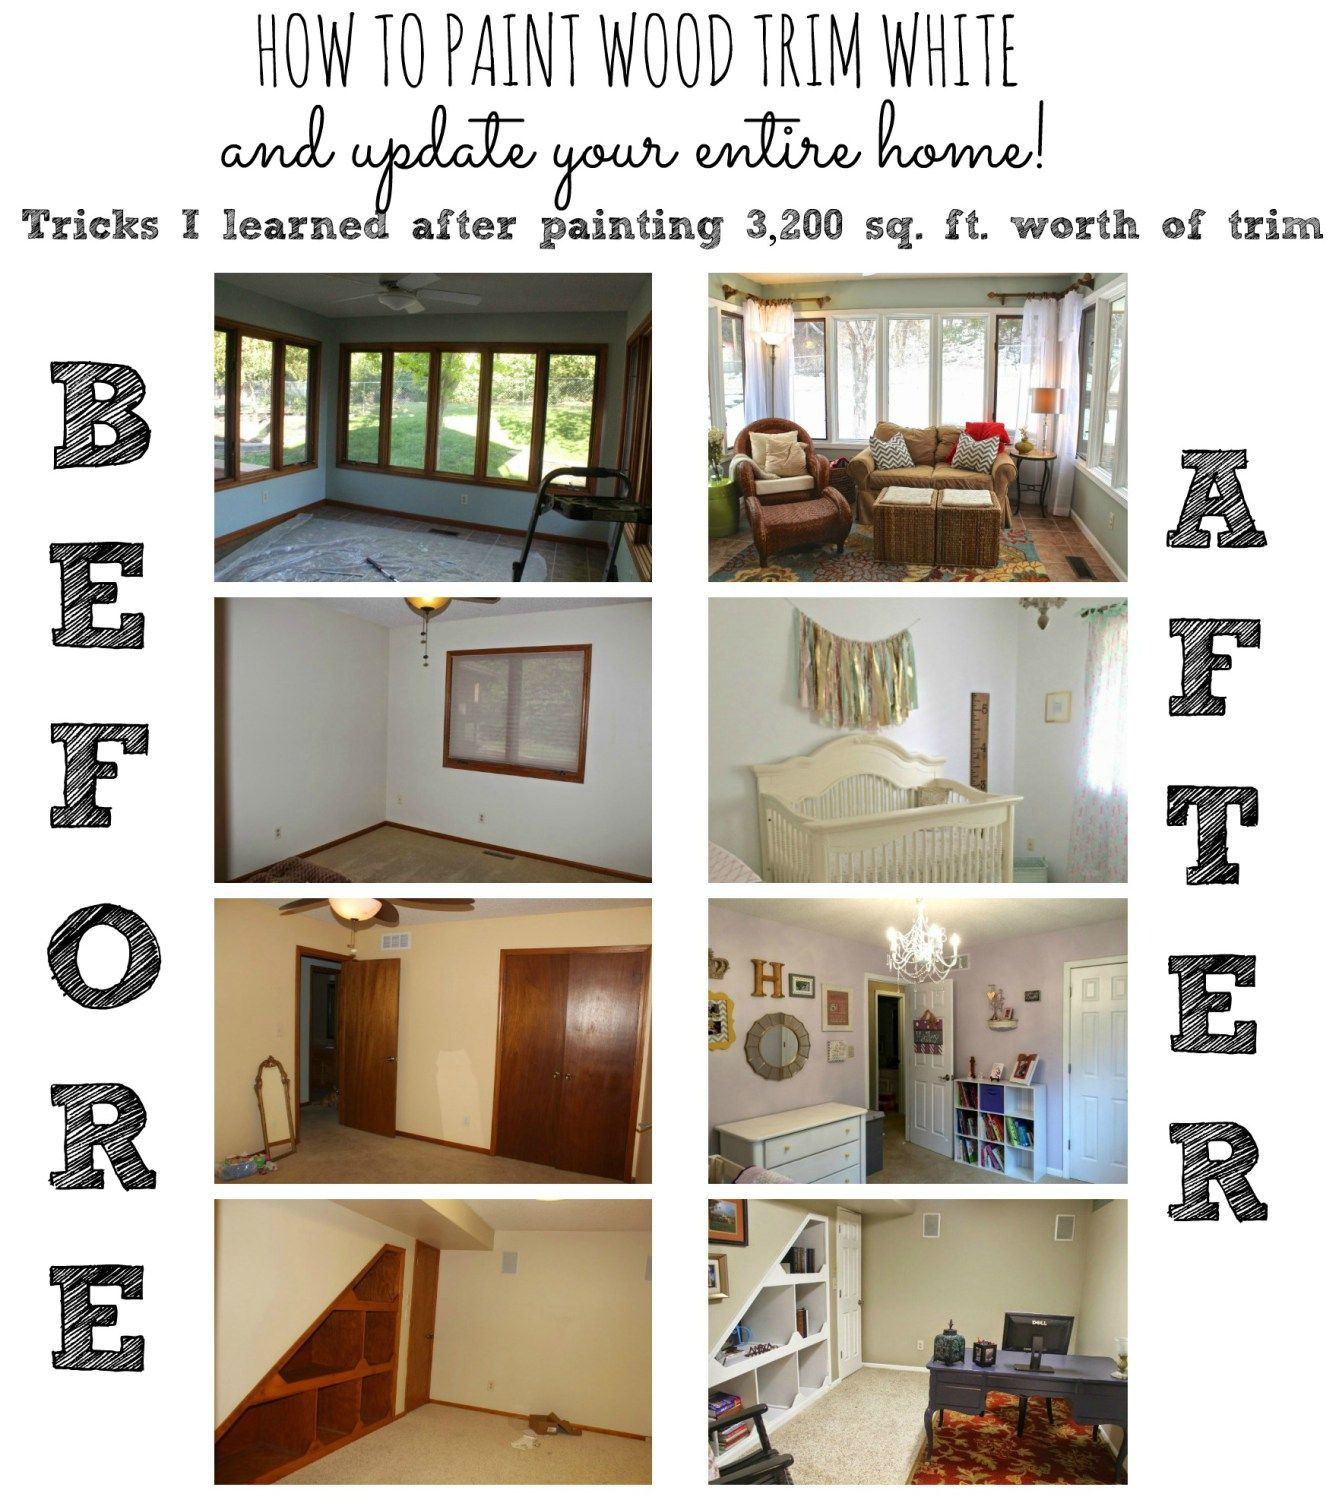 Painting Your Trim Is One Of The Est Ways To Update Home Here Are Some Tips And Tricks I Learned Along Way Make This Process As Simple